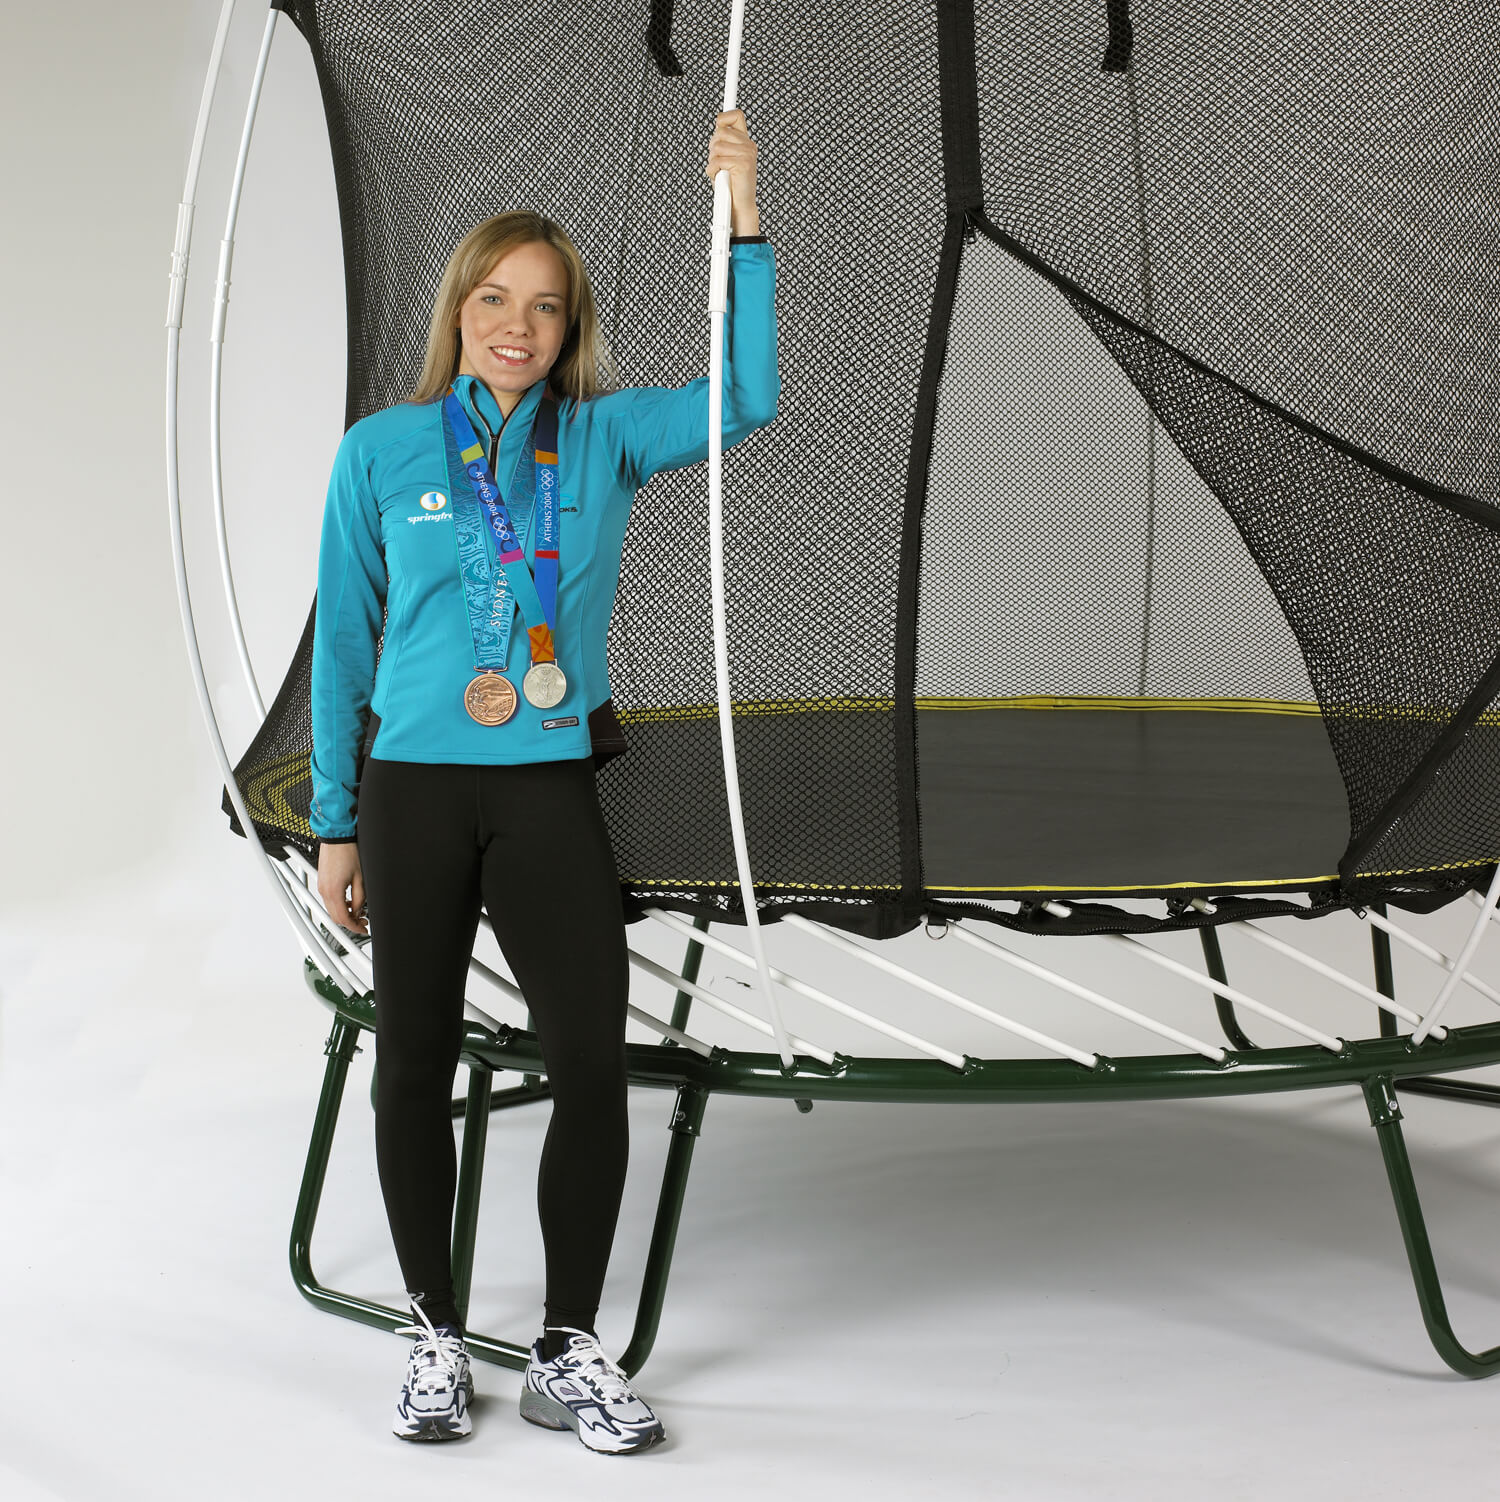 Karen Cockburn attended in the awards ceremony but also gave everyone a demo on the Springfree Trampoline